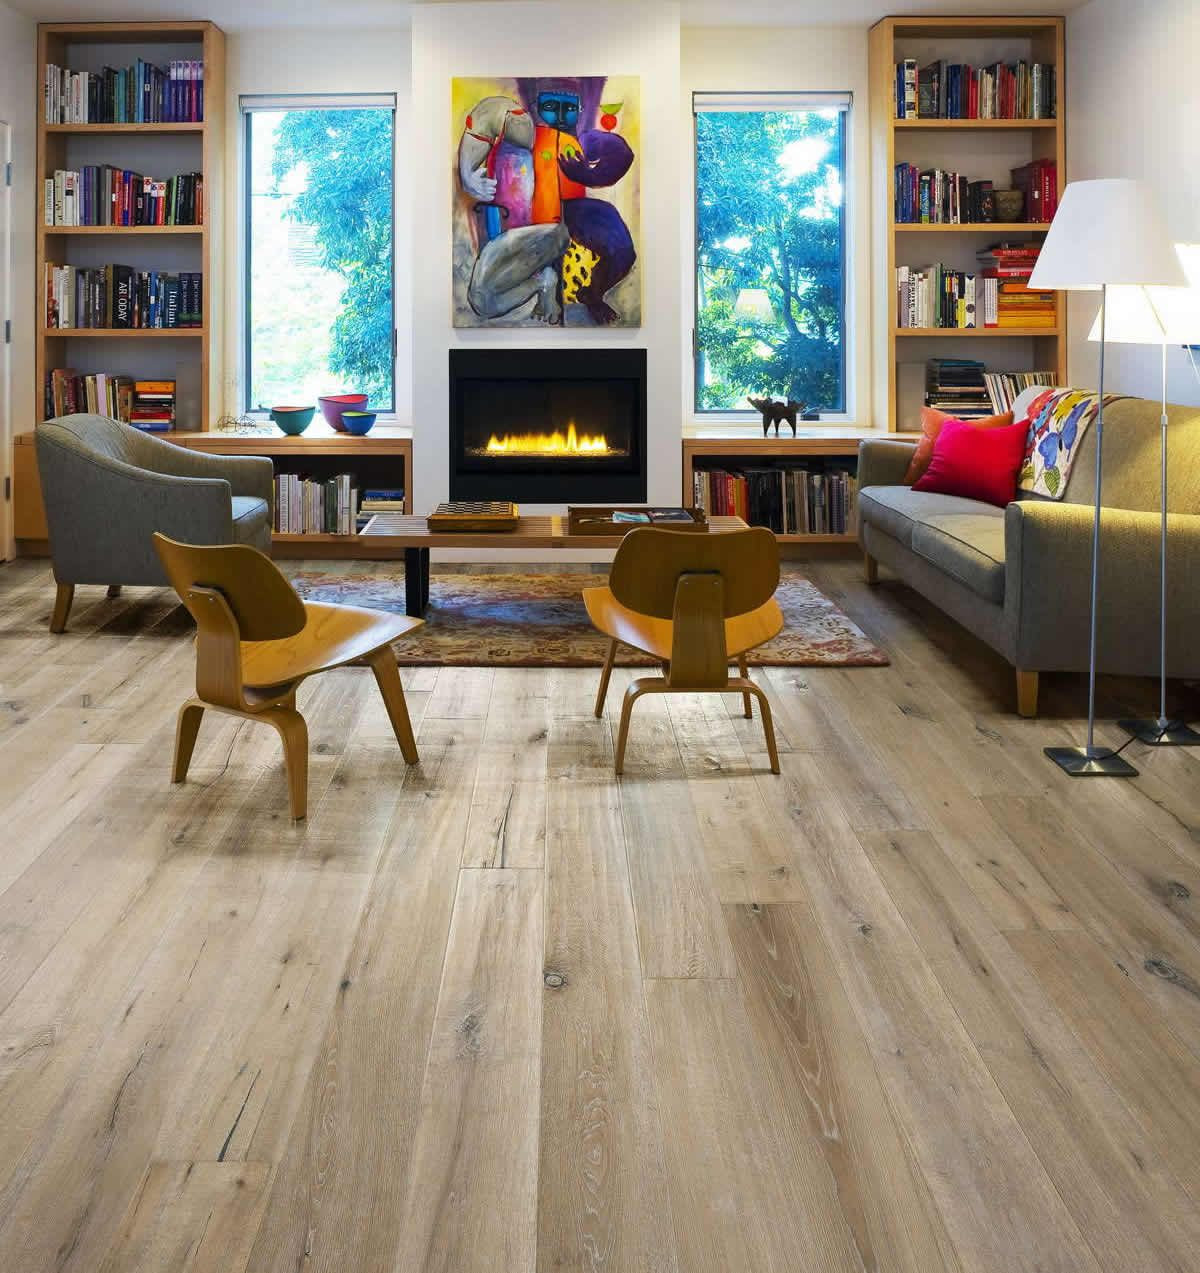 installing engineered hardwood flooring on concrete of kahrs artisan oak linen engineered wood flooring pinterest within bring light and life into your home with the beautiful kahrs artisan oak linen engineered wood flooring from flooringsupplies co uk